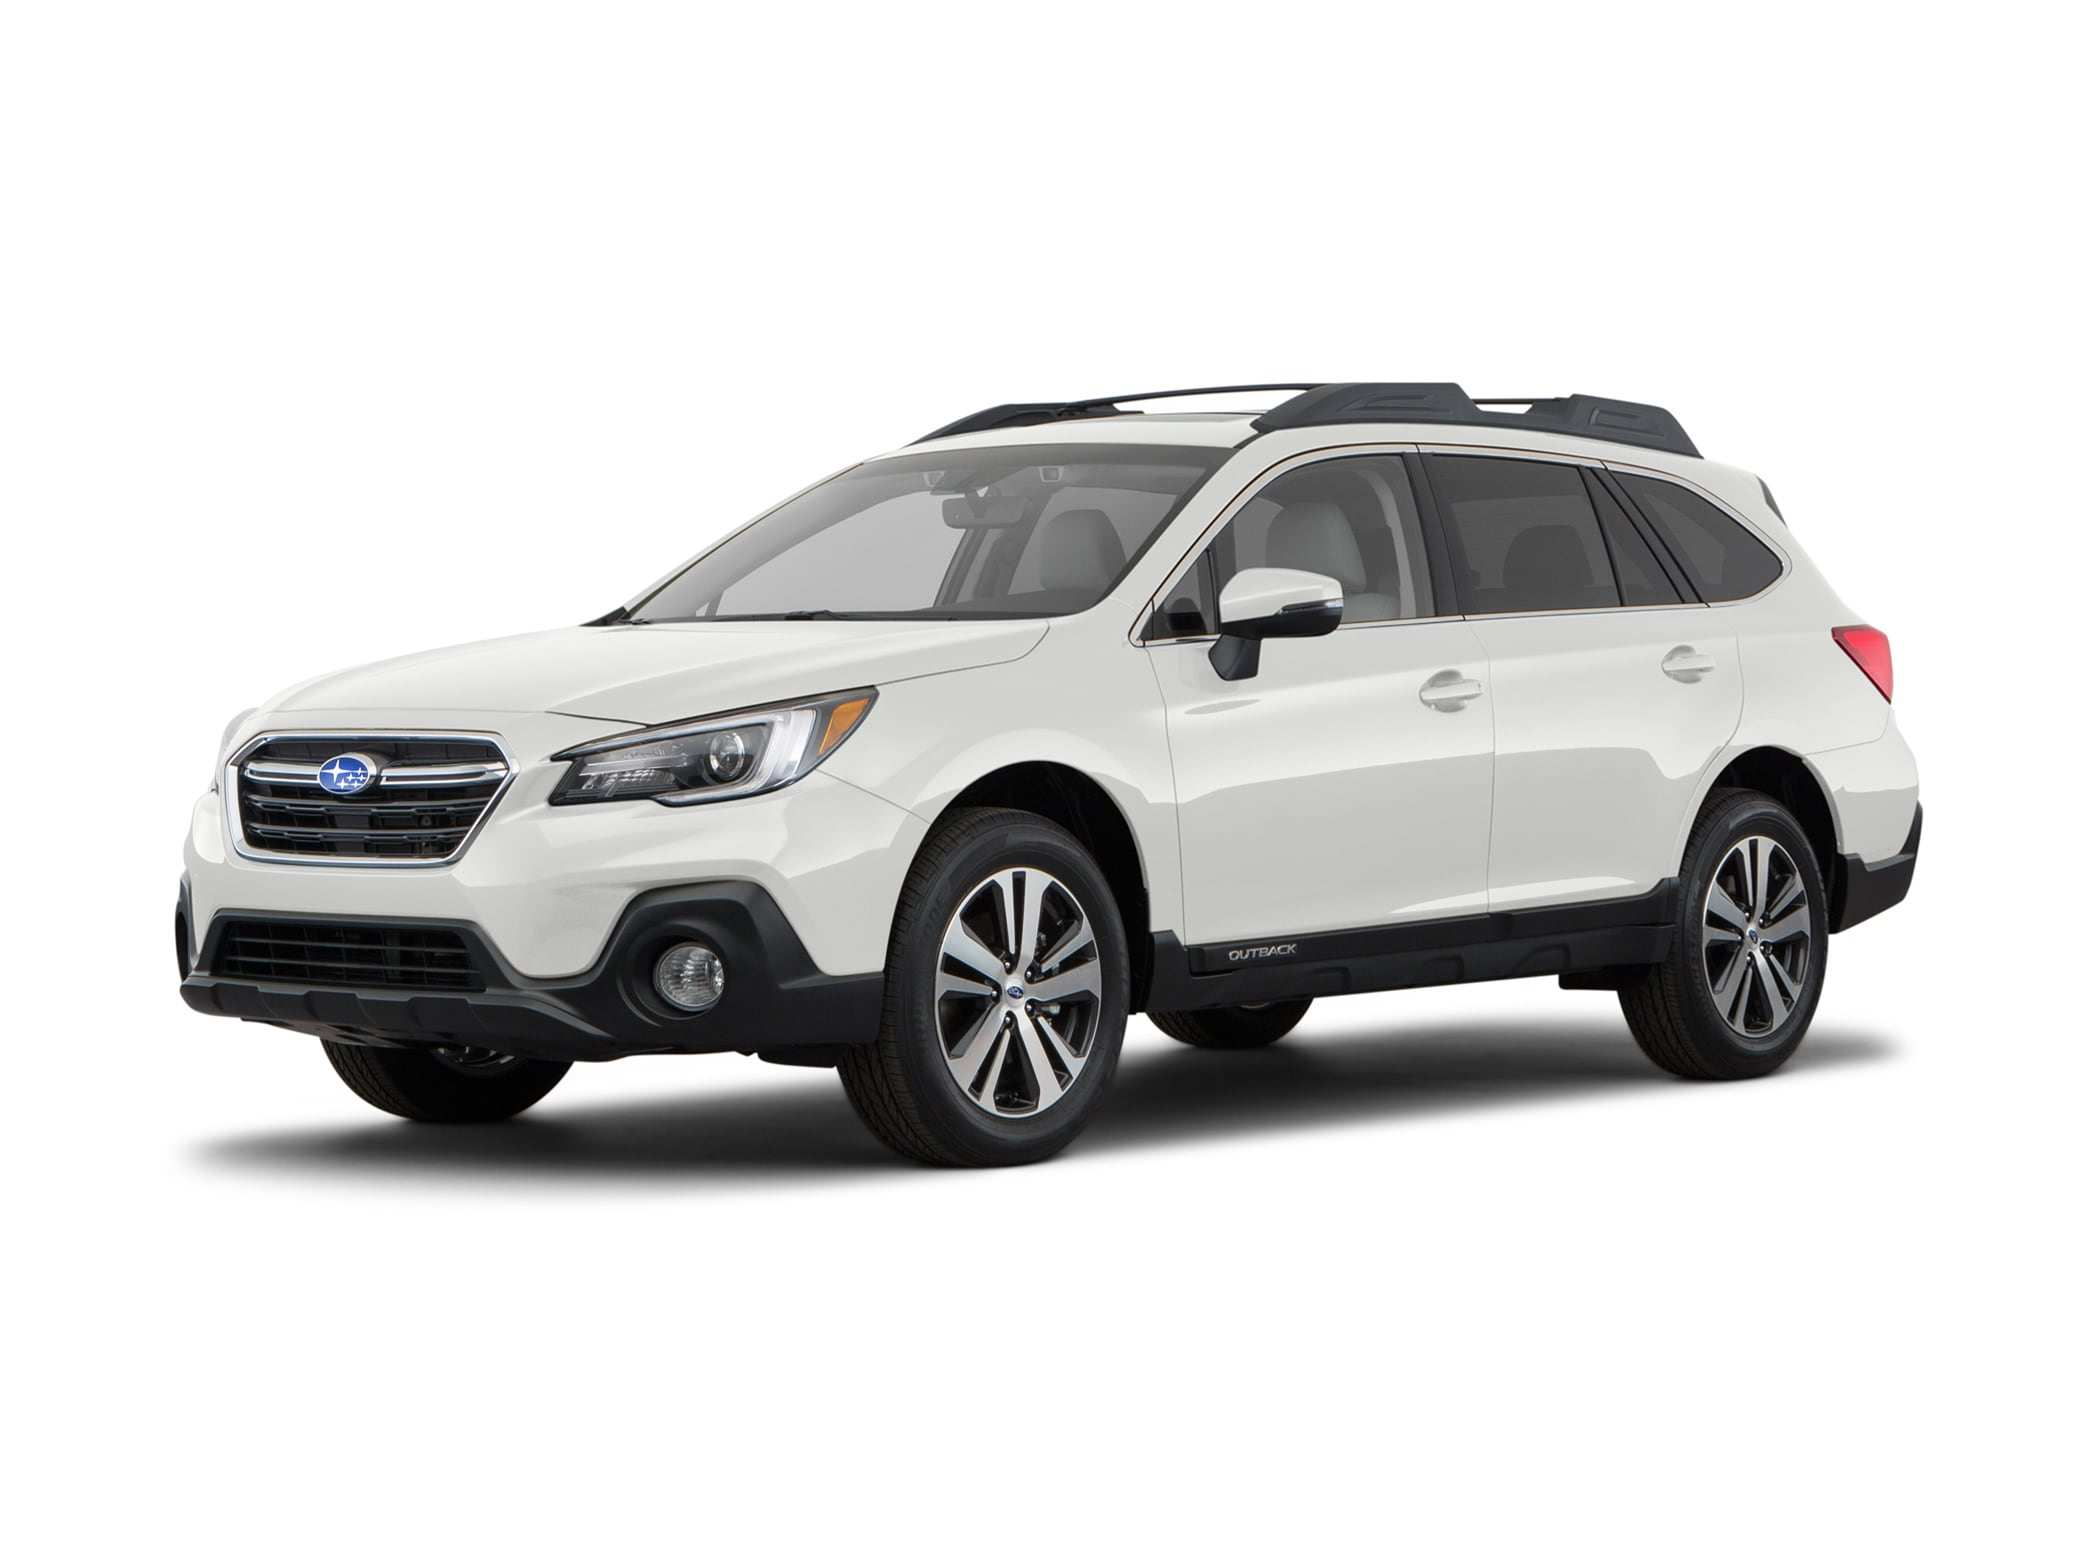 24 The Best 2019 Subaru Outback Images